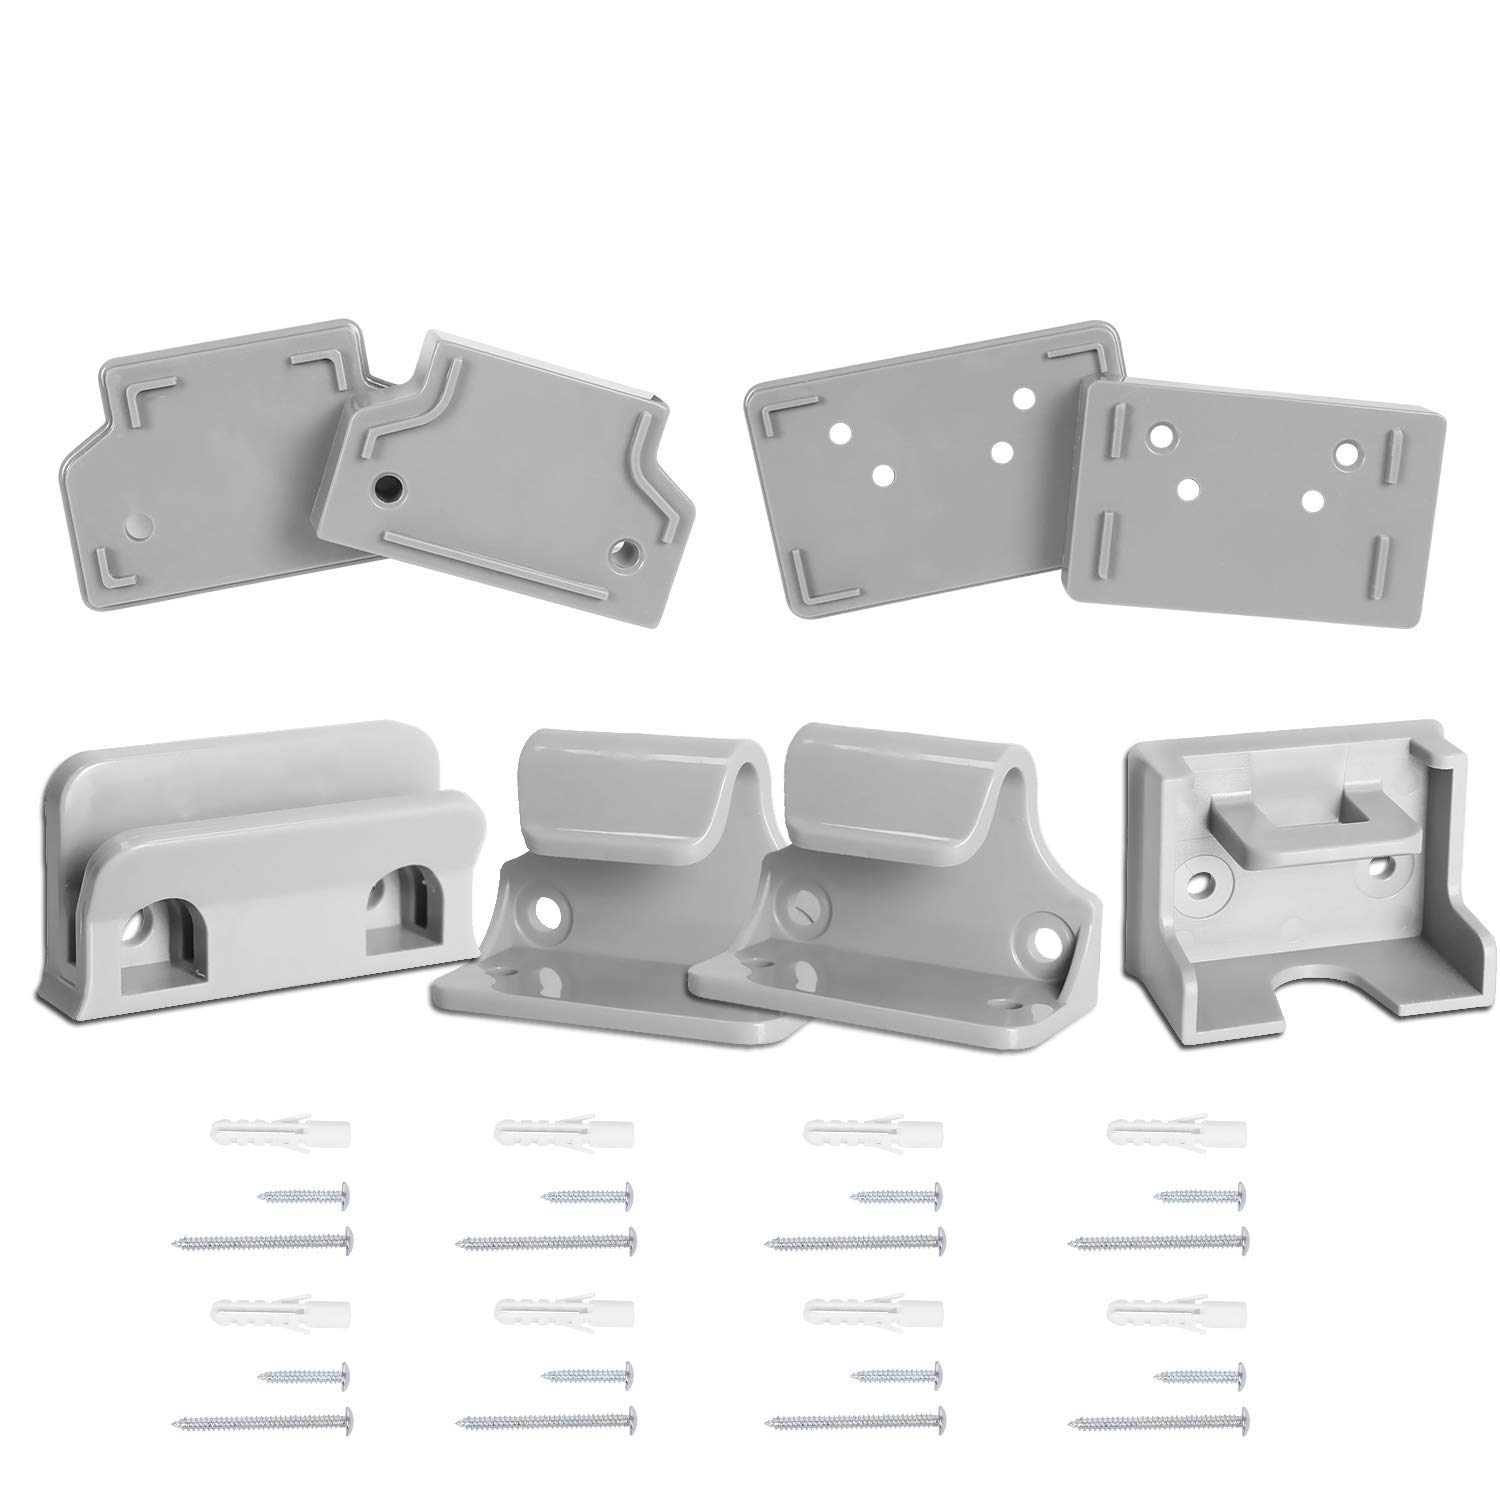 Babepai Hardware Replacement Parts Kit for Retractable Baby Gate, Full Set Wall Mounting Accessories Brackets Screws Wall Spacer Grey